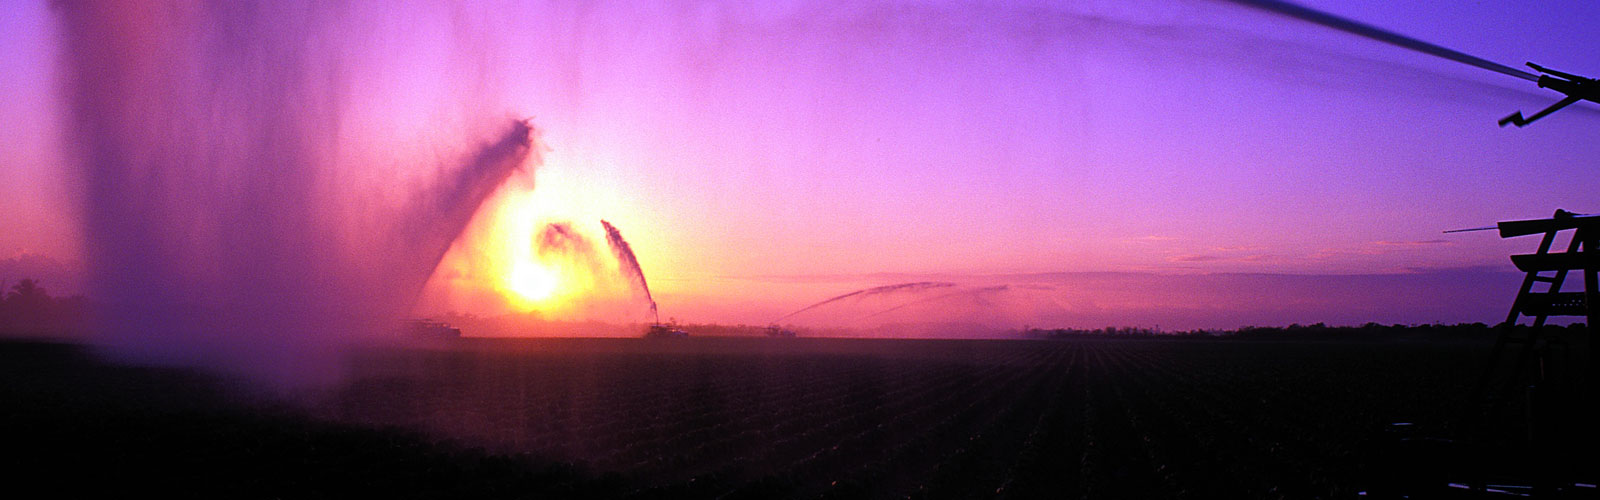 Center pivot system spraying water on a field at sunset.